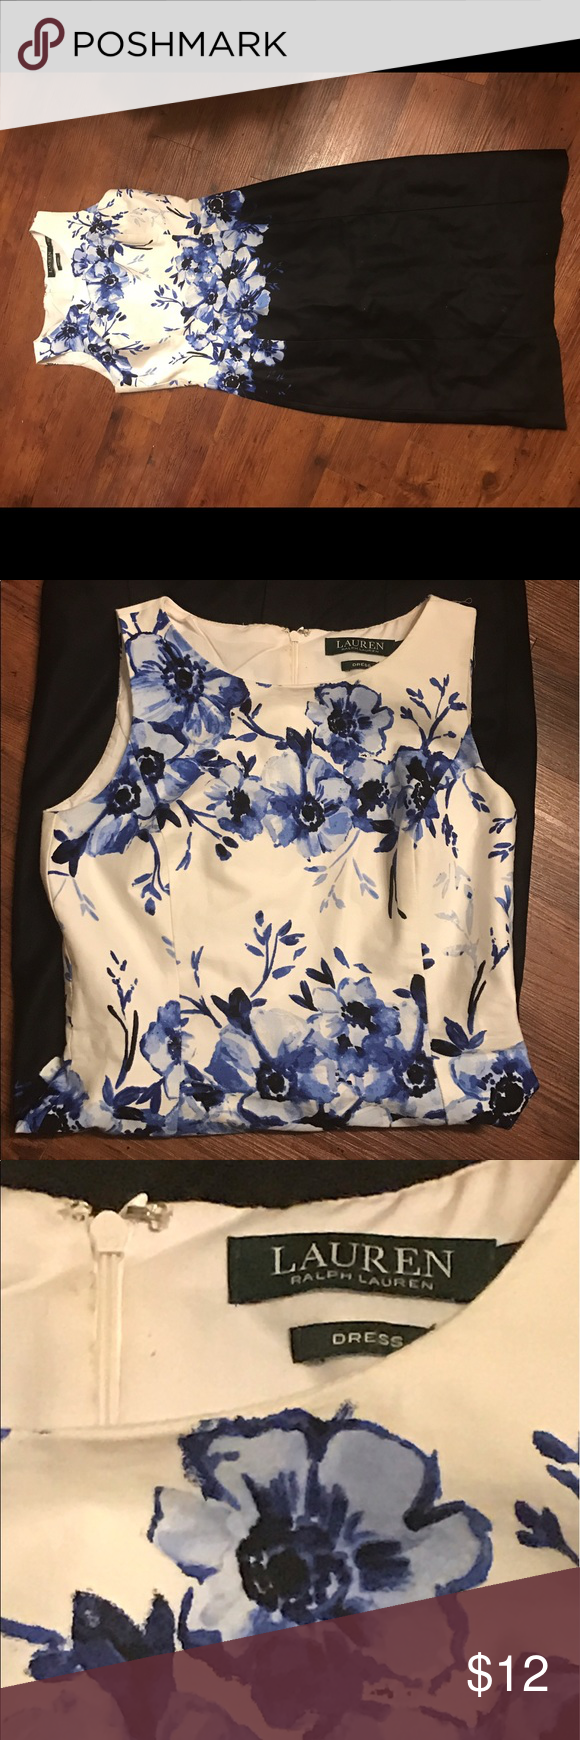 👗 Ralph Lauren Black and Blue Floral Sheath Dress Gently used. No stains or rips. Knee length. Comes from a smoke free and pet free home. Lauren Ralph Lauren Dresses Midi